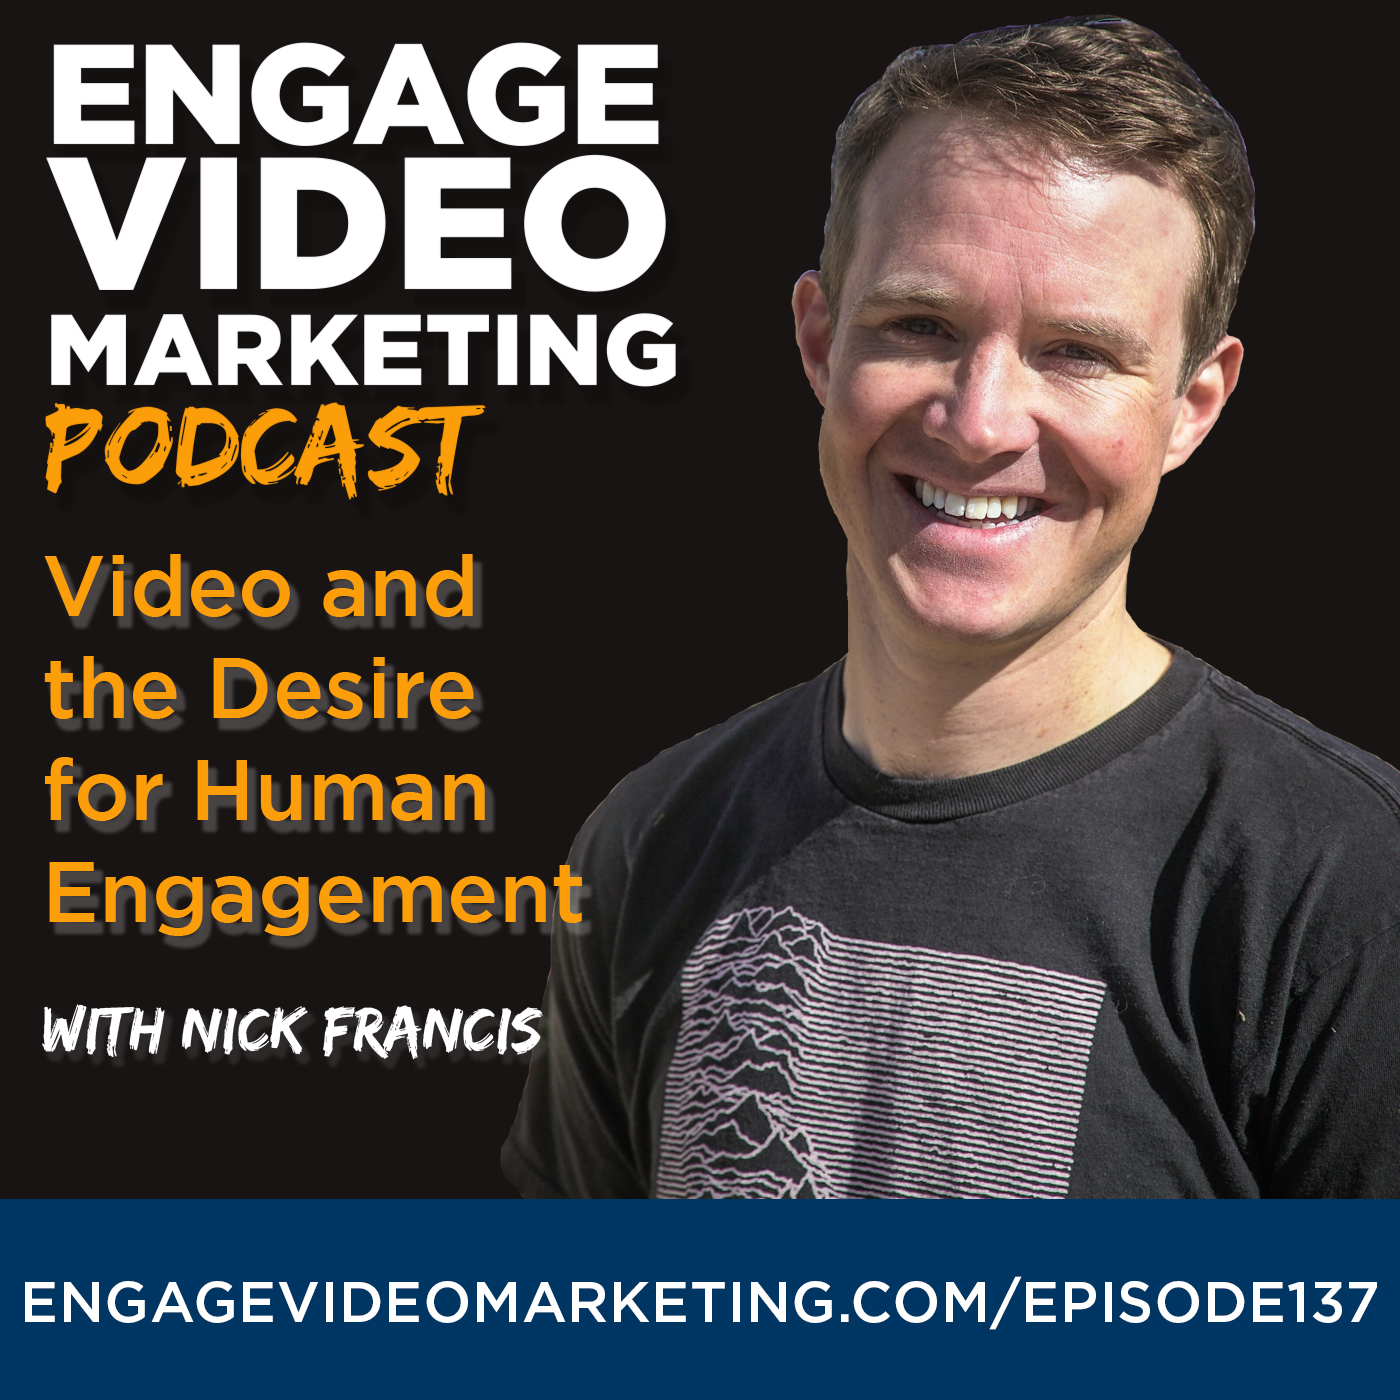 Video and the Desire For Human Engagement with Nick Francis